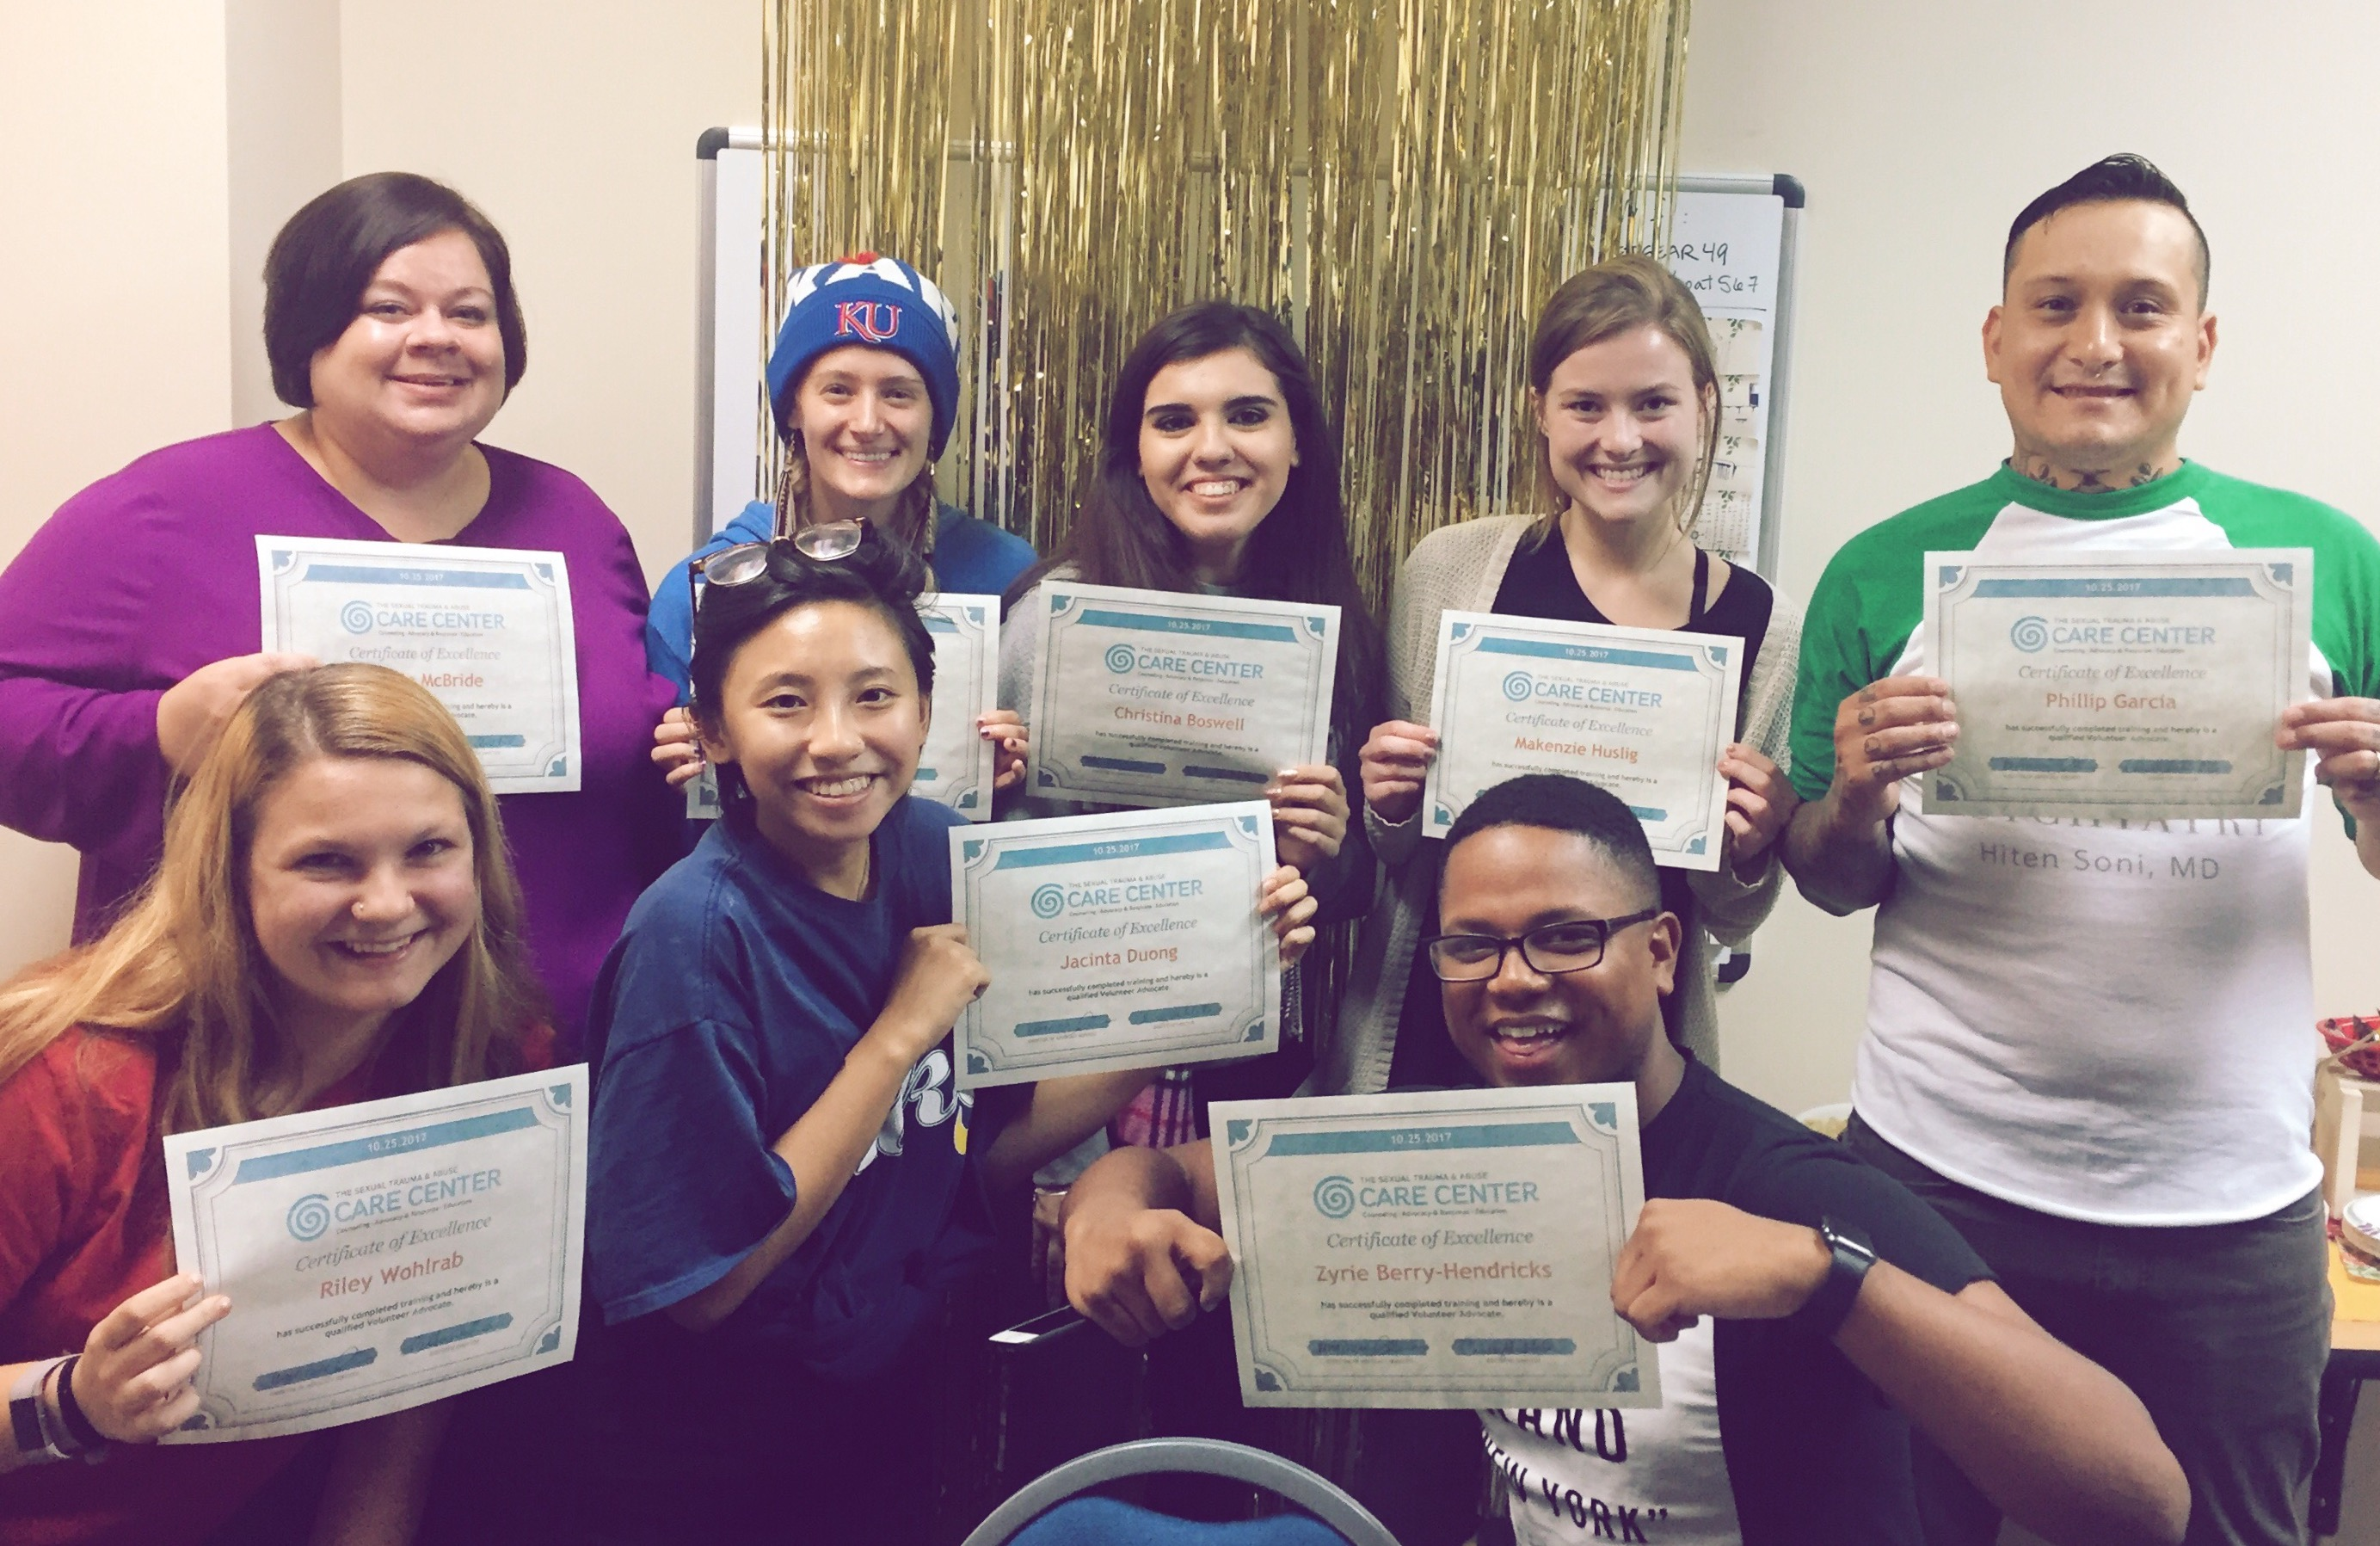 A group photo of Volunteer Advocates holding up certificates after finishing the Fall 2017 training.